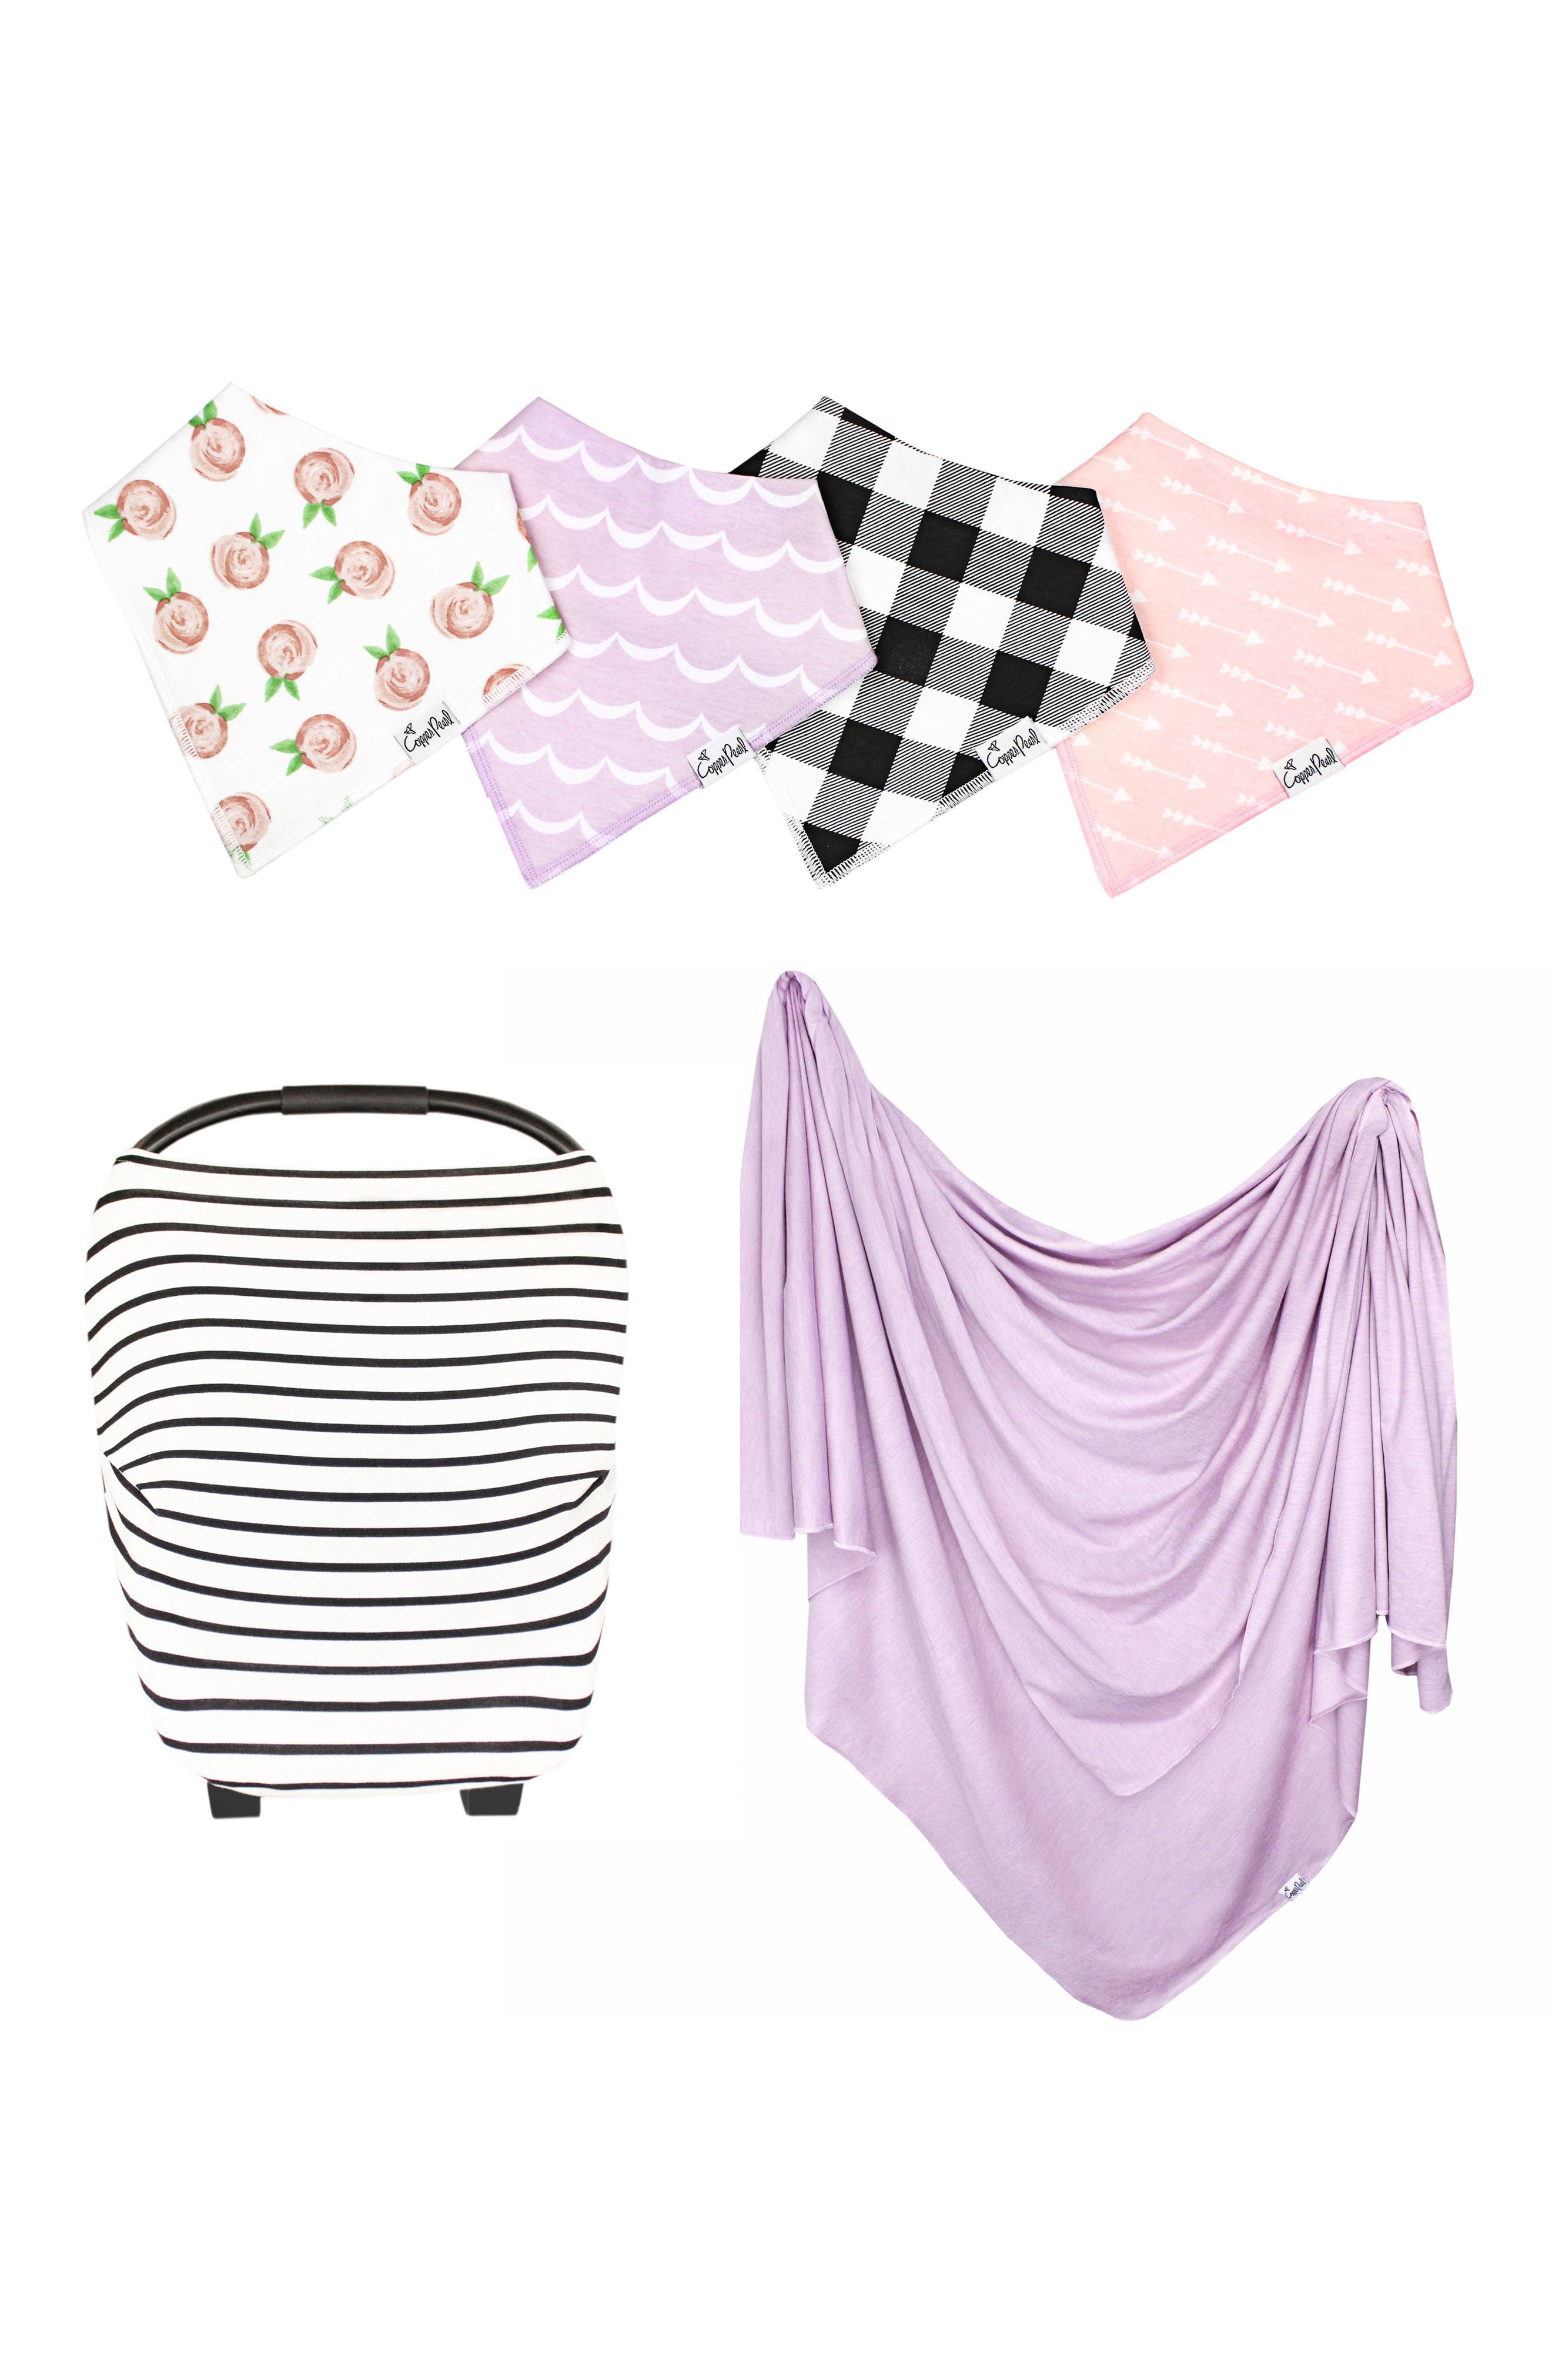 Lily Bib, Multiuse Cover & Swaddle Blanket Gift Set,                             Main thumbnail 1, color,                             LILY